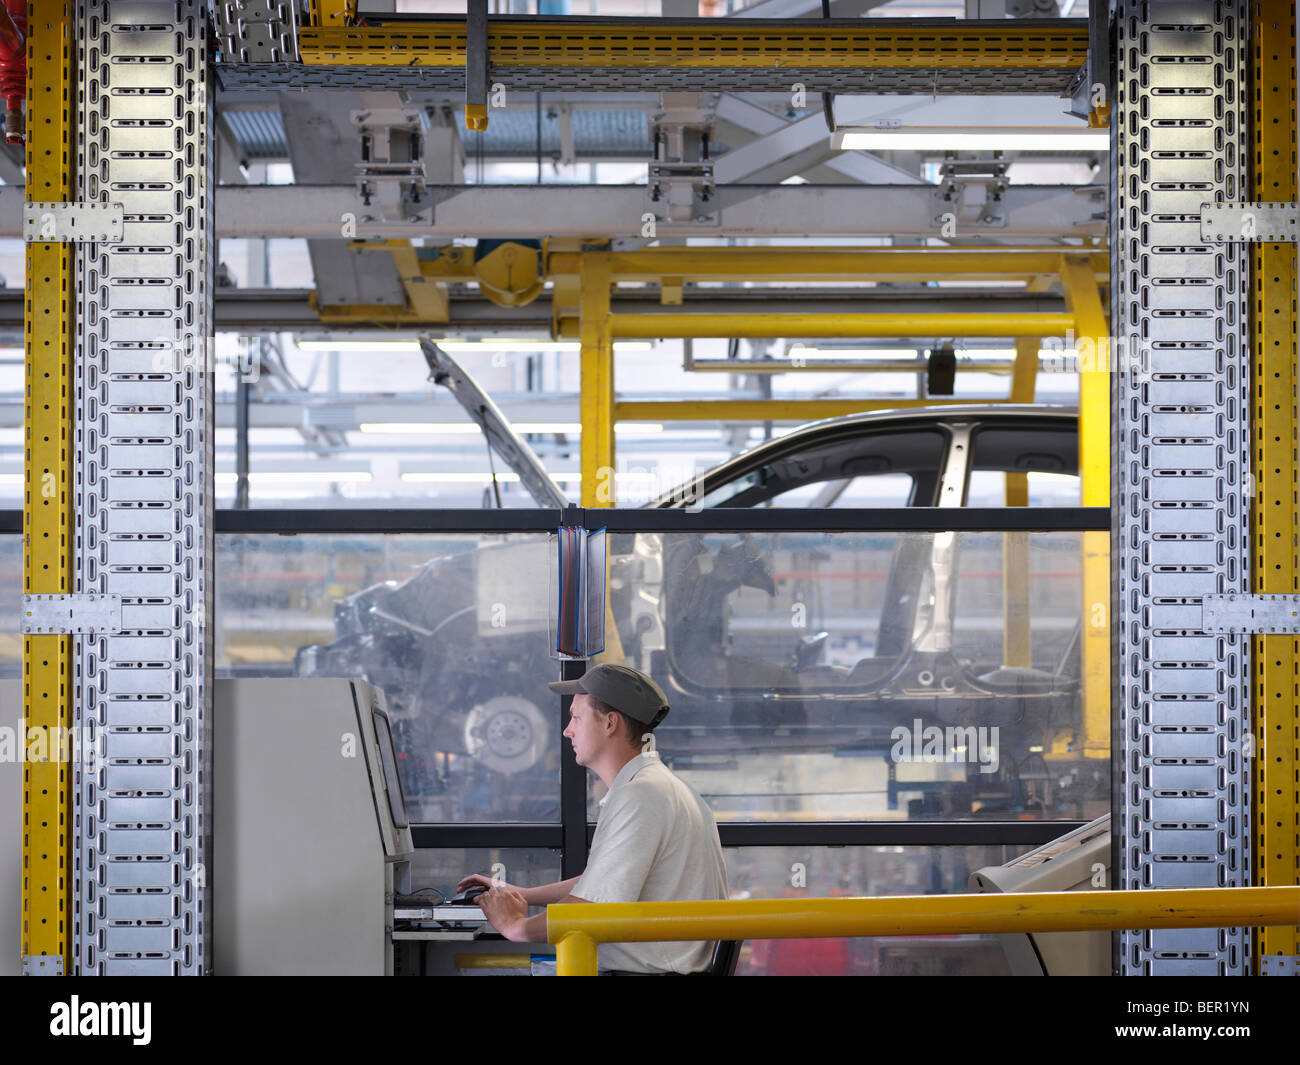 Worker At Controls On Production Line - Stock Image